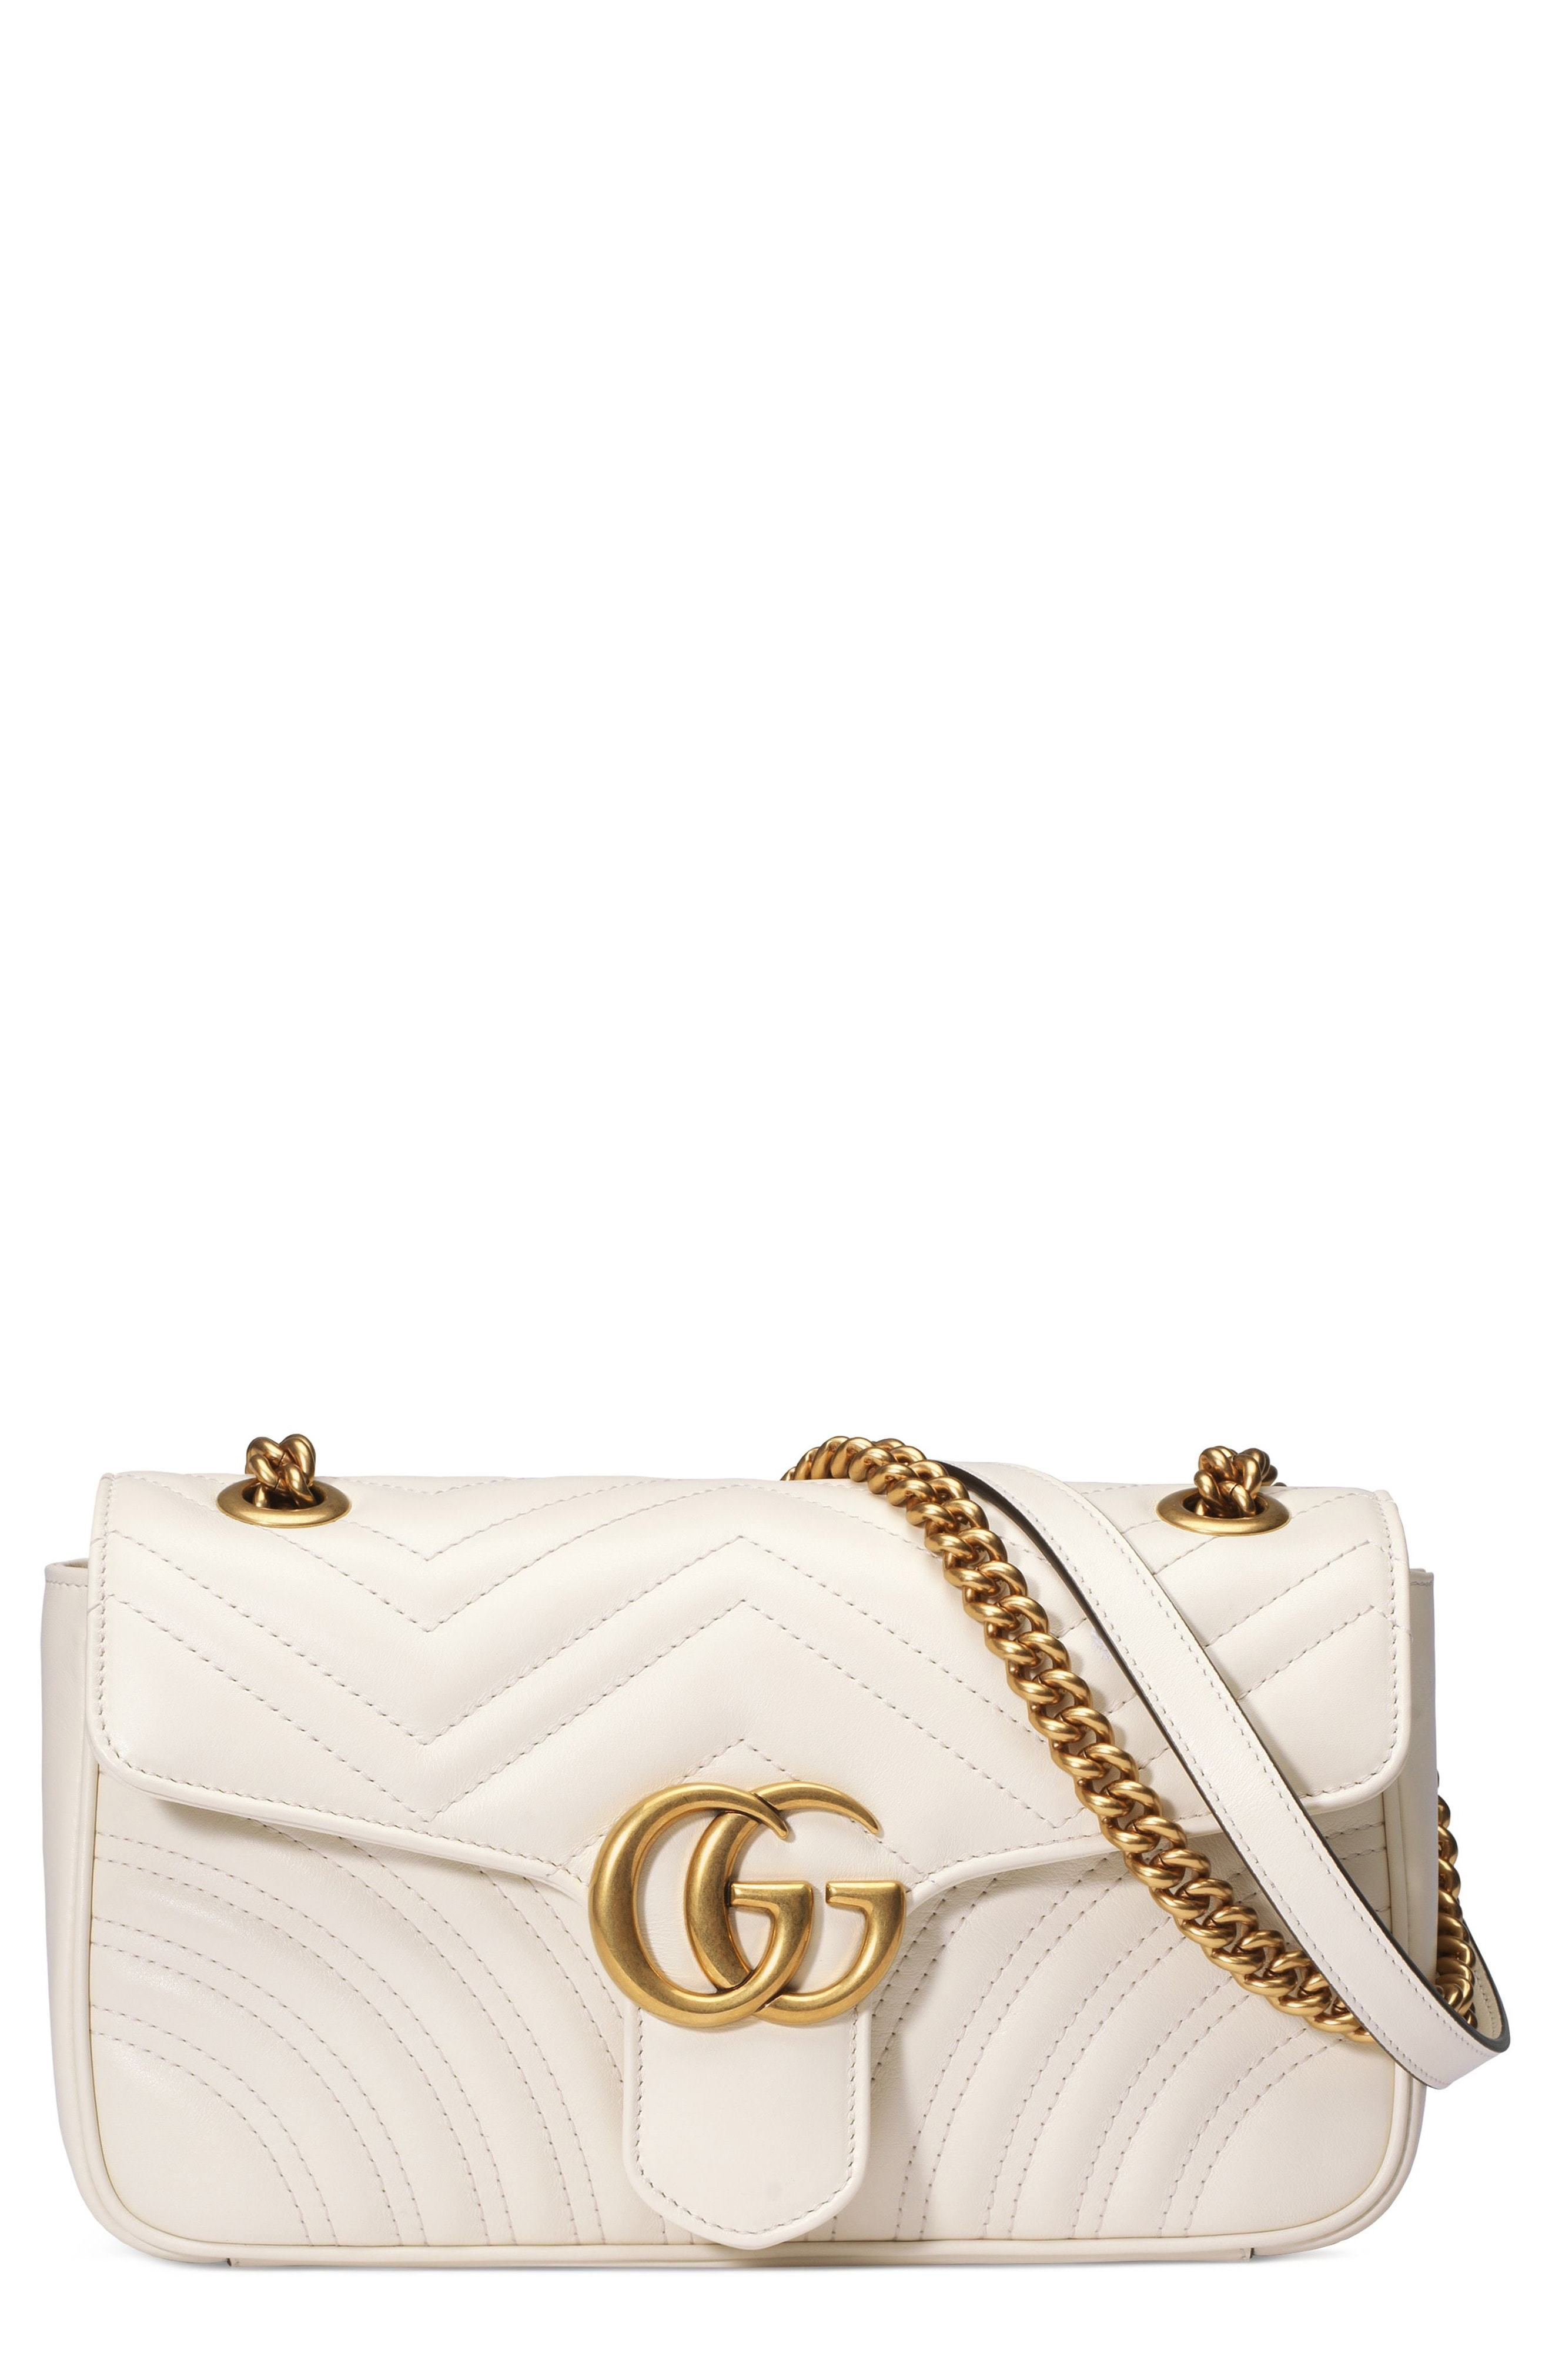 3e66bc7eebf1 ... White Quilted Leather Crossbody Bags Gucci Small Gg Marmont 20 Matelasse  Leather Shoulder Bag